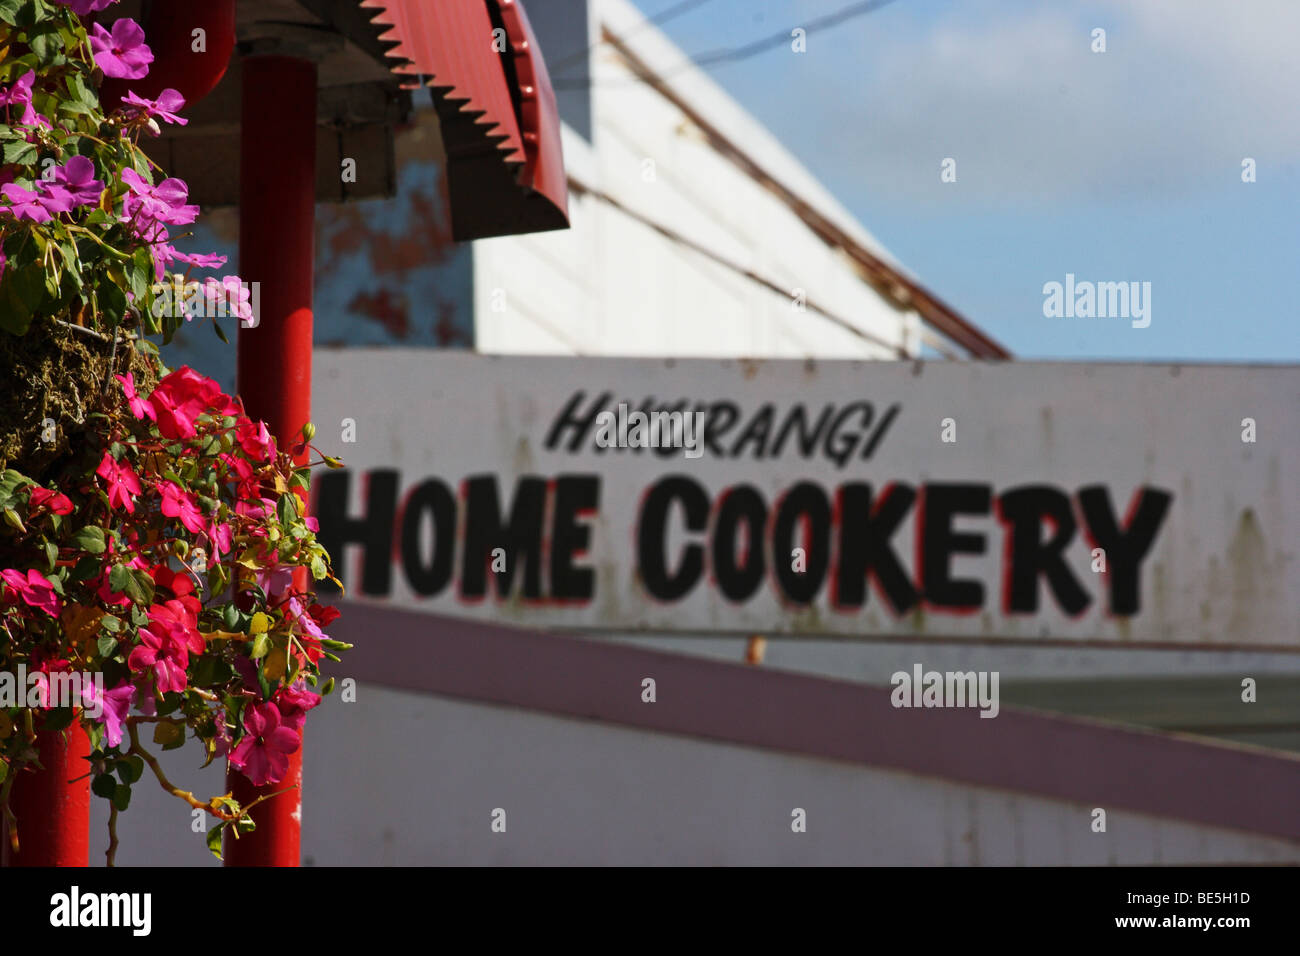 Sign of a Home Cookery in Hikurangi. New Zealand - Stock Image